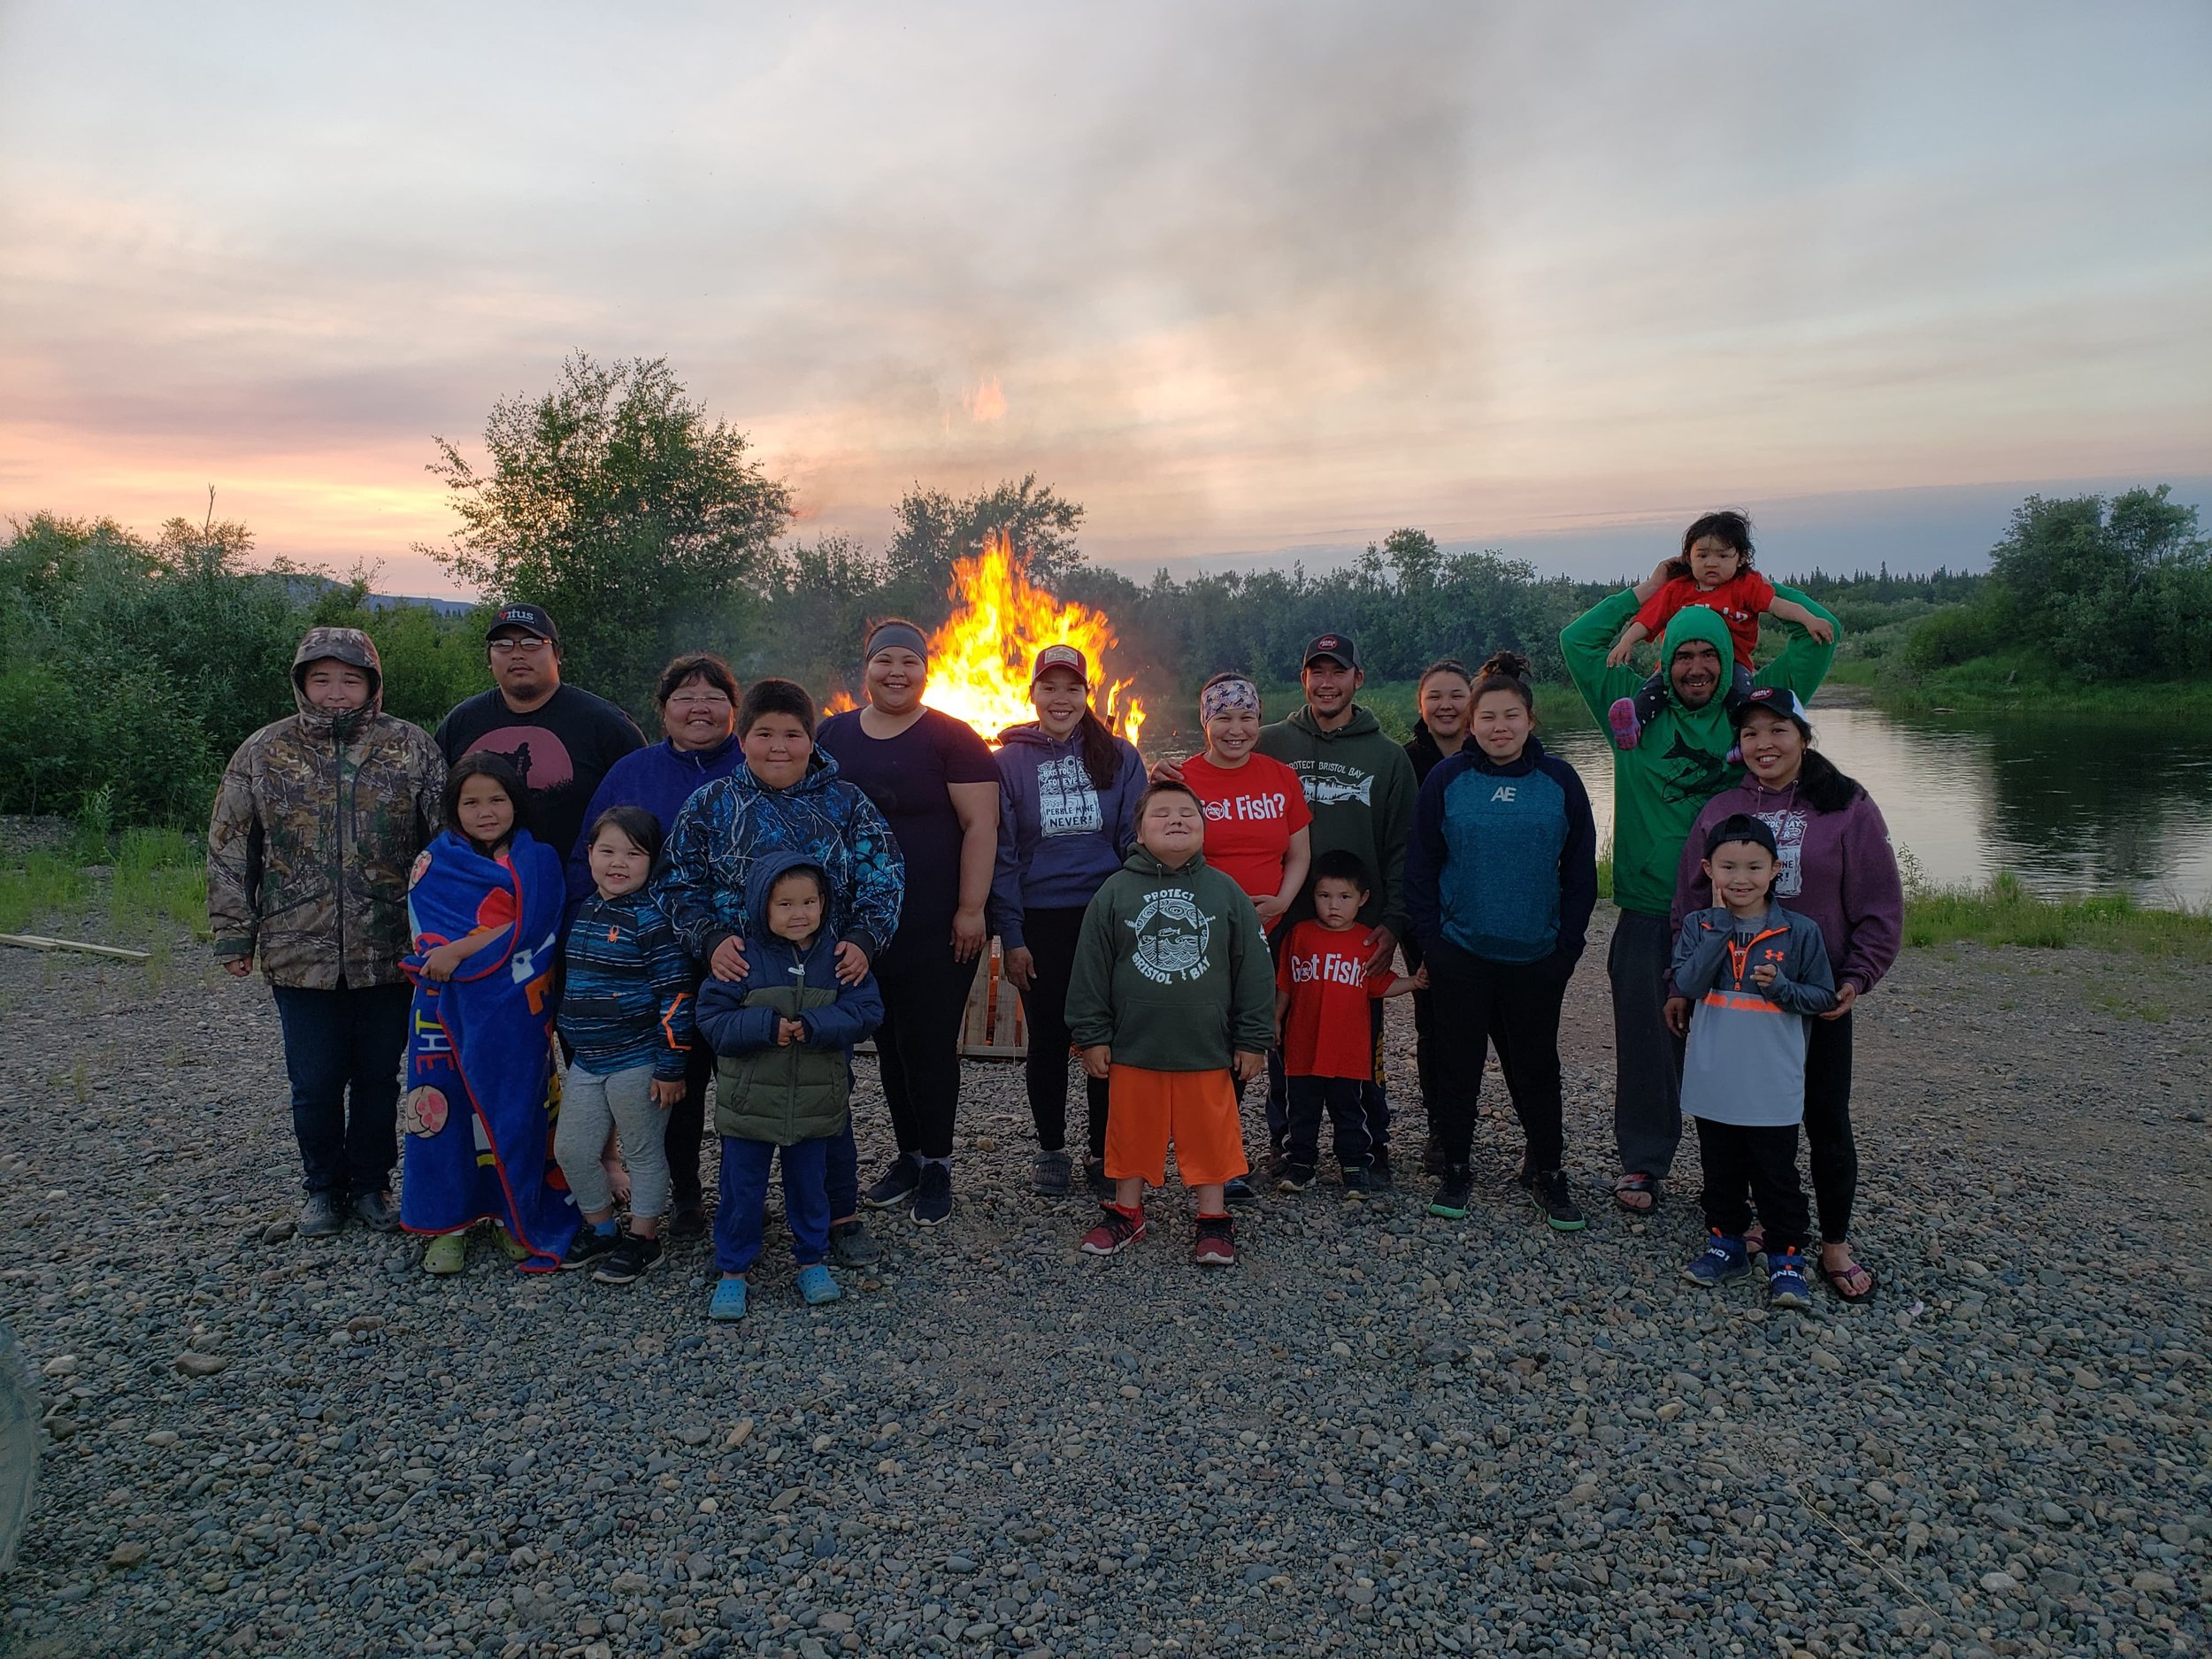 Koliganek residents stand by a July 28, 2019 bonfire to send an SOS to Alaska's congressional leaders on Pebble. Subsistence, sport and commercial fishermen throughout Bristol Bay lit fires and flares to send a distress signal. Photo by Delores Larson